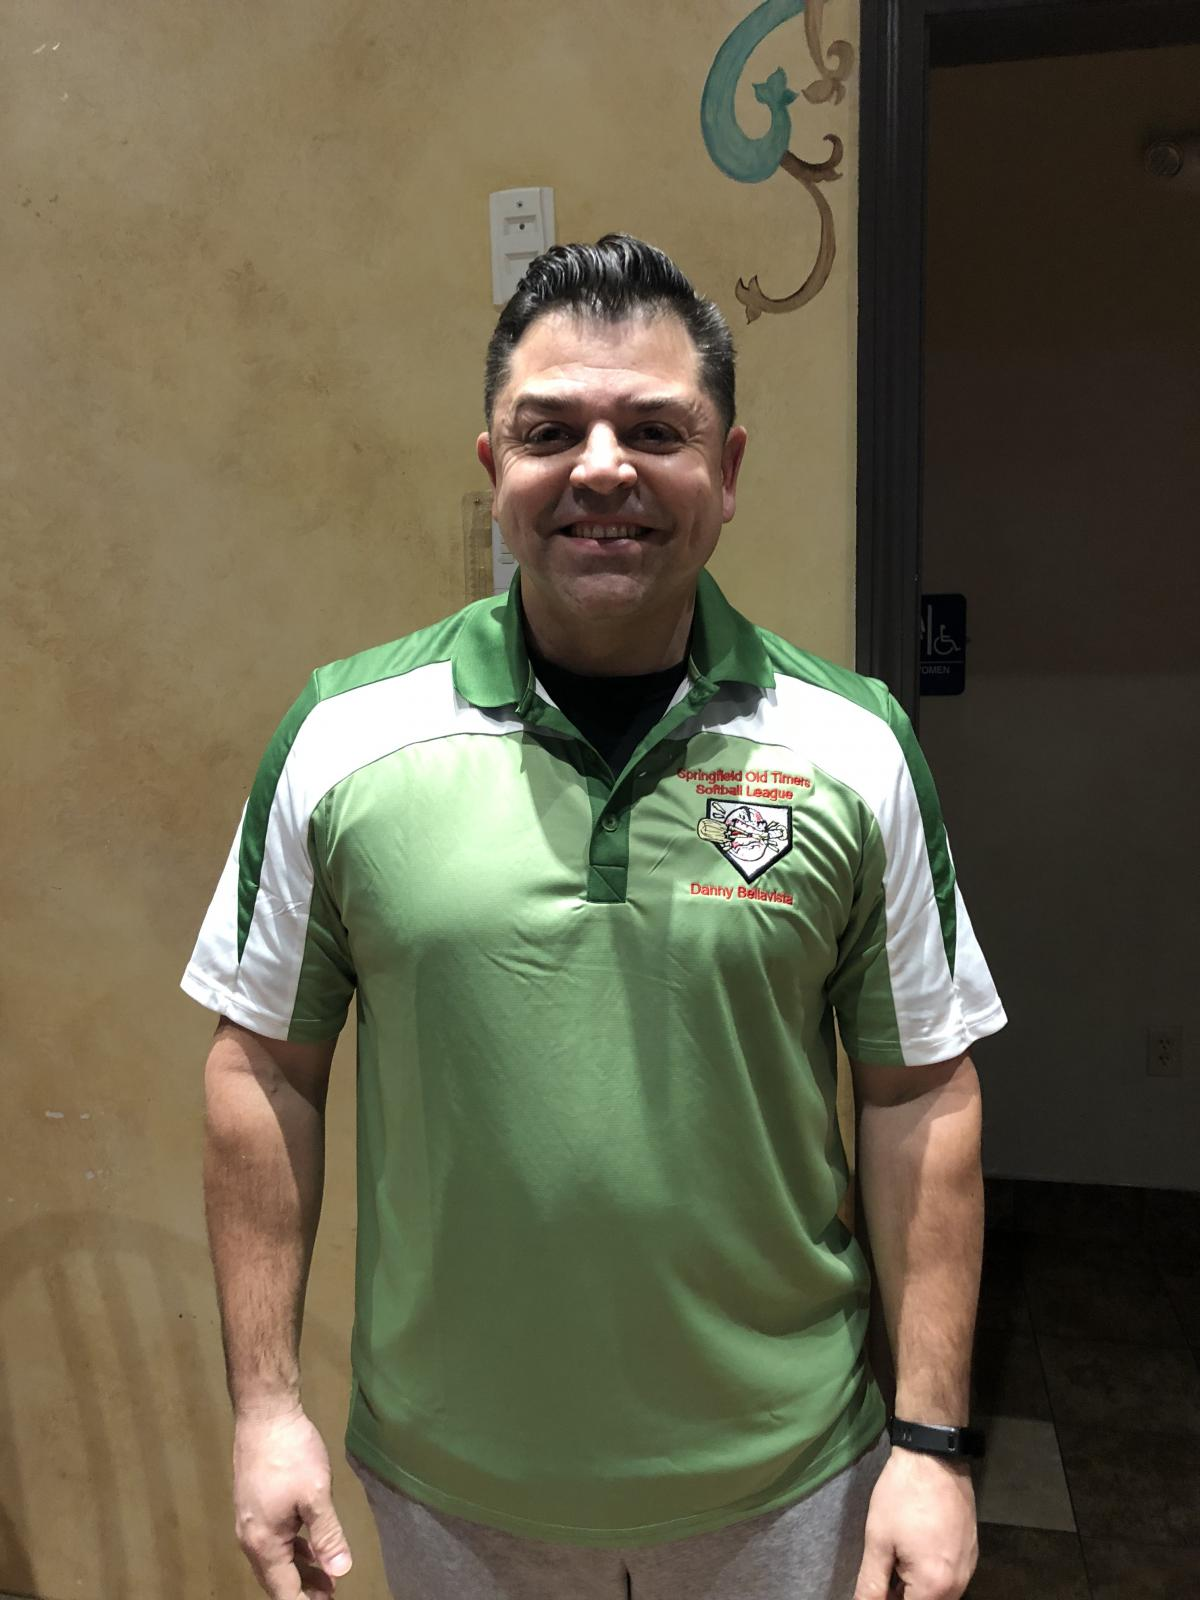 Vice-Presidente de Springfield Old Timers Softball League